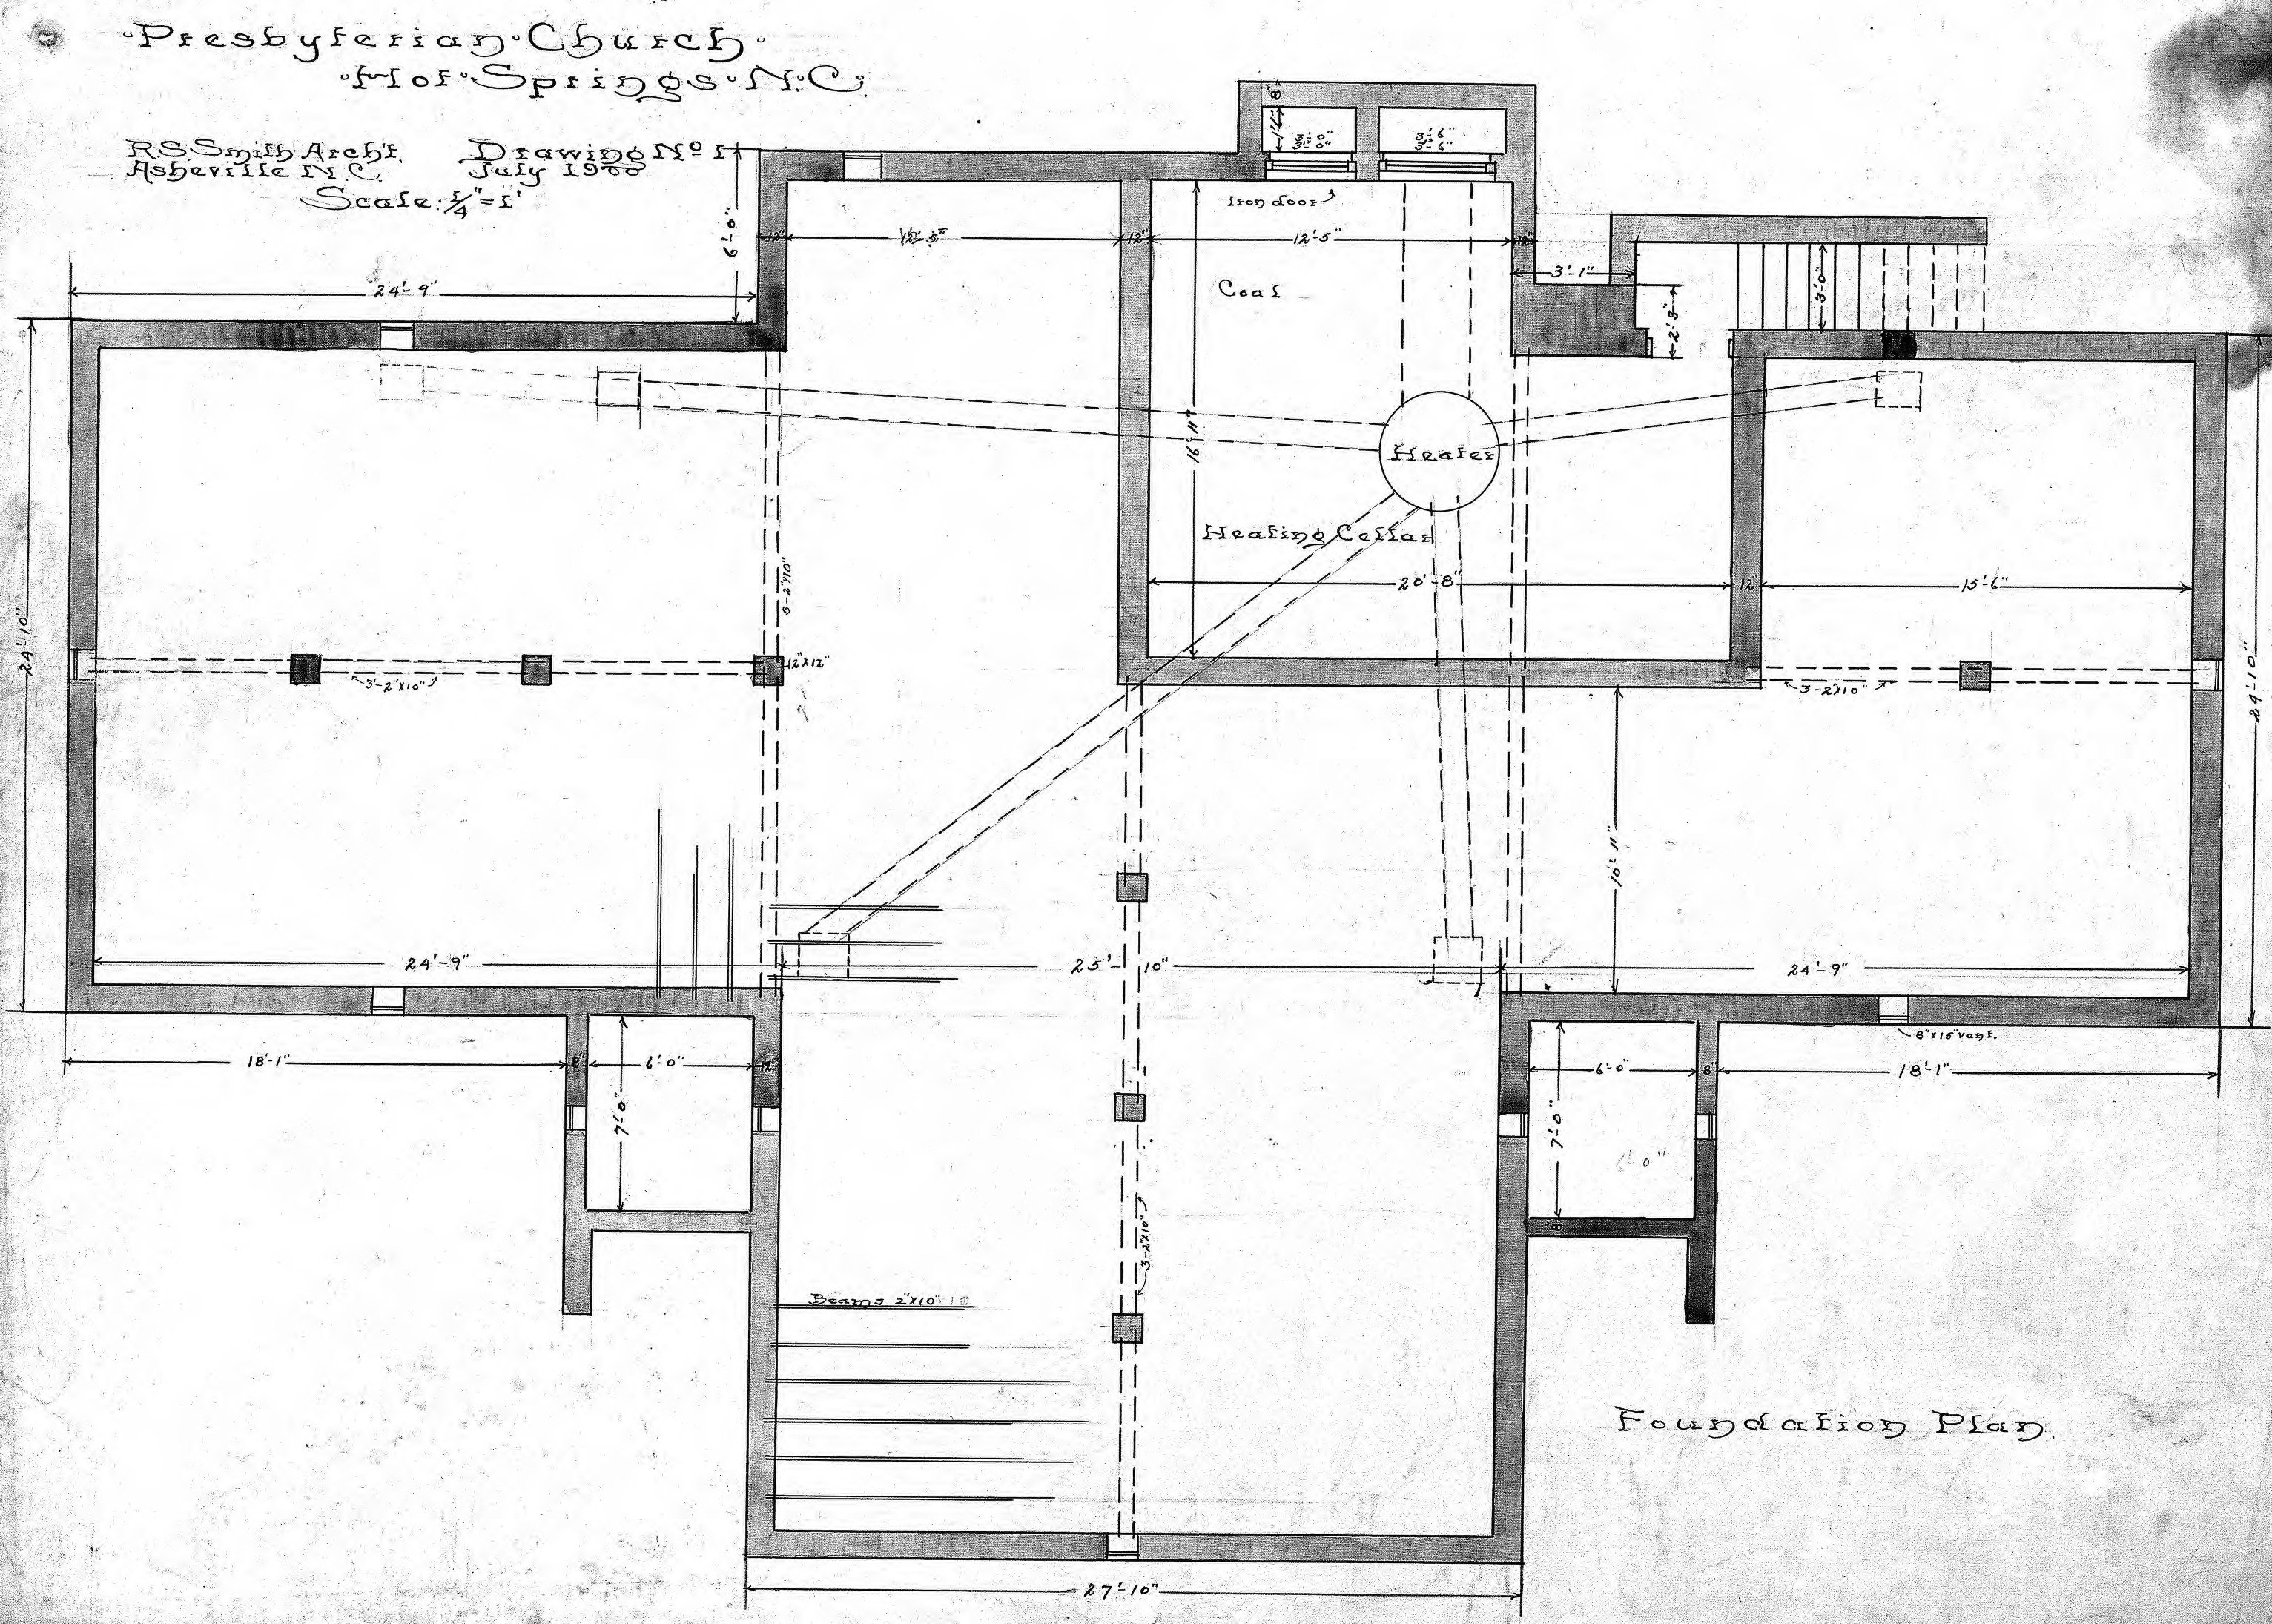 Foundation plan drawing for Foundation blueprints